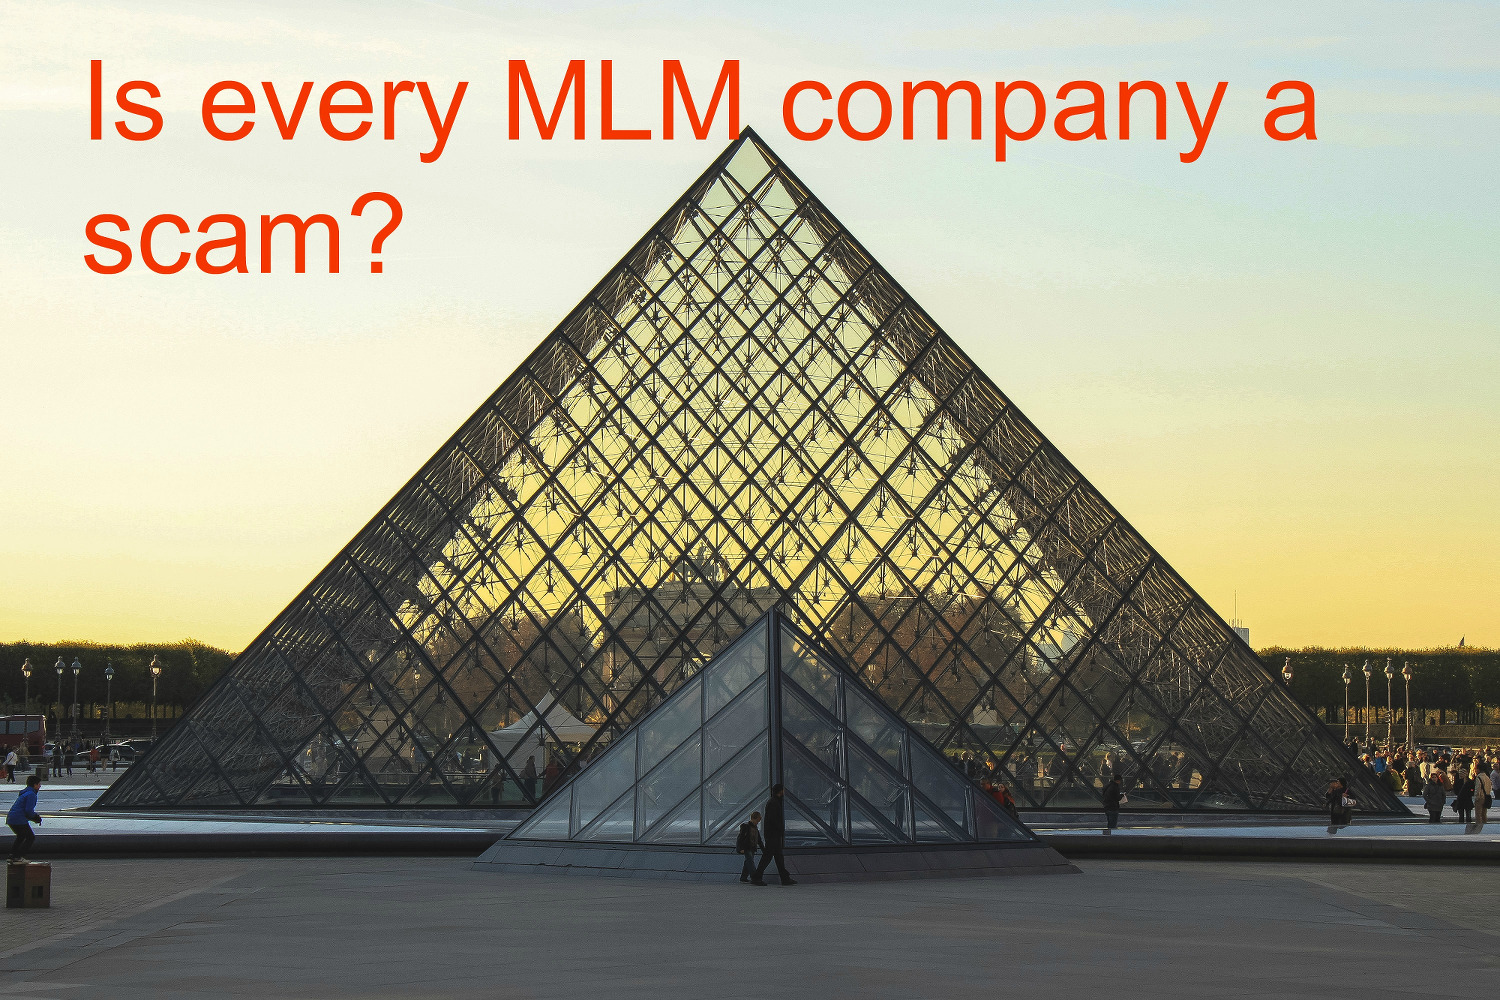 Is MLM always a scam?